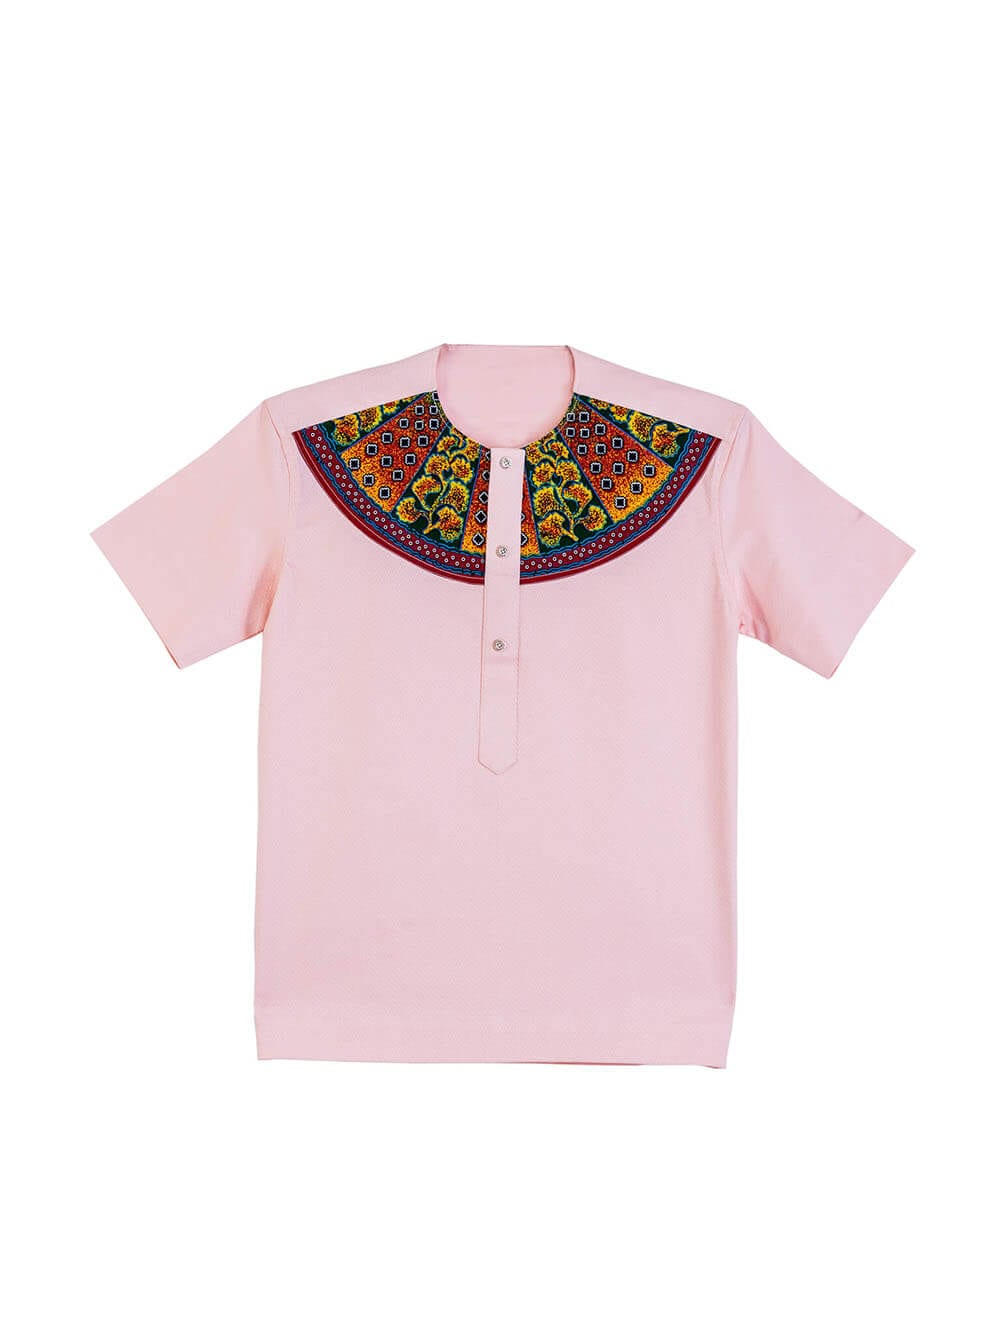 Akuffo-ahene Patched Pattern on Plain Peach, Textured Cotton Shirt